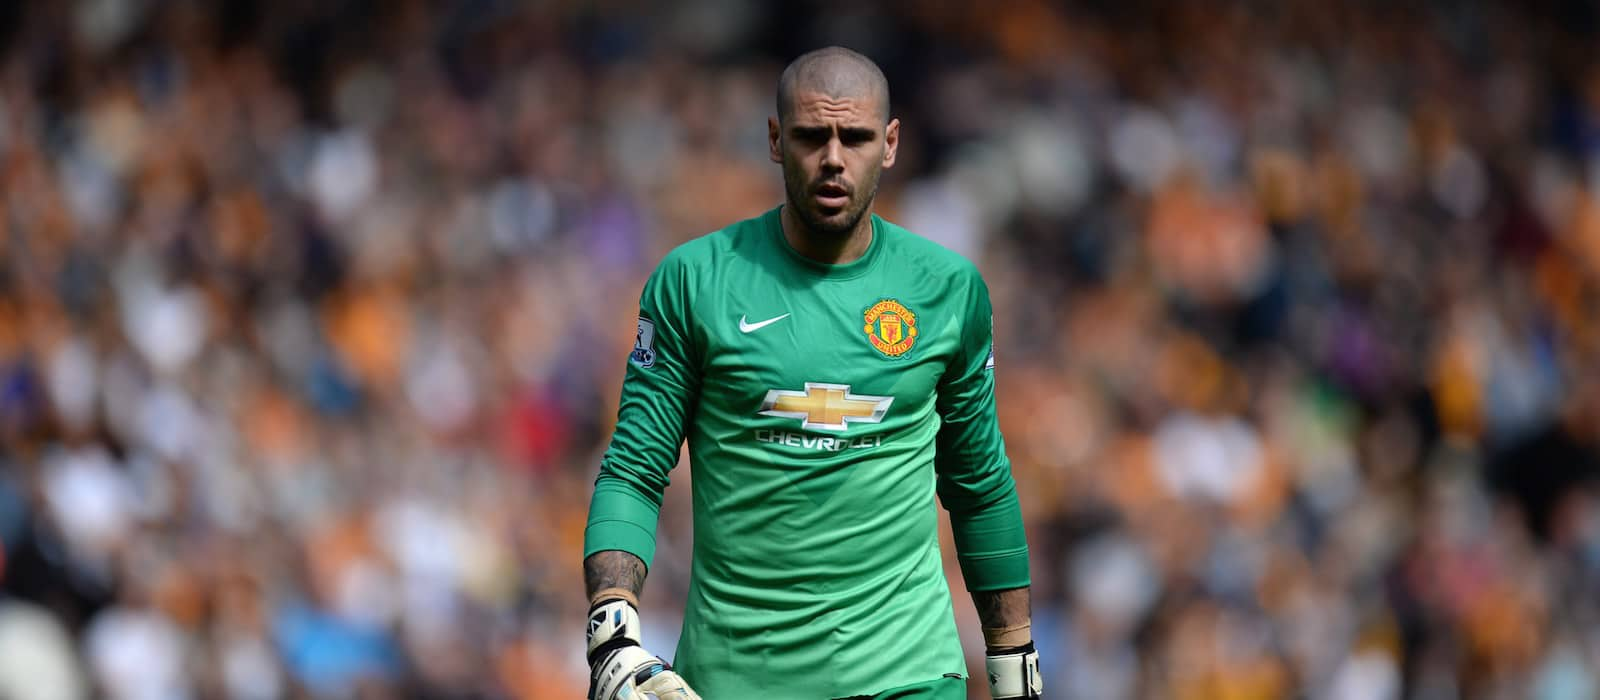 Victor Valdes has Standard Liege loan terminated